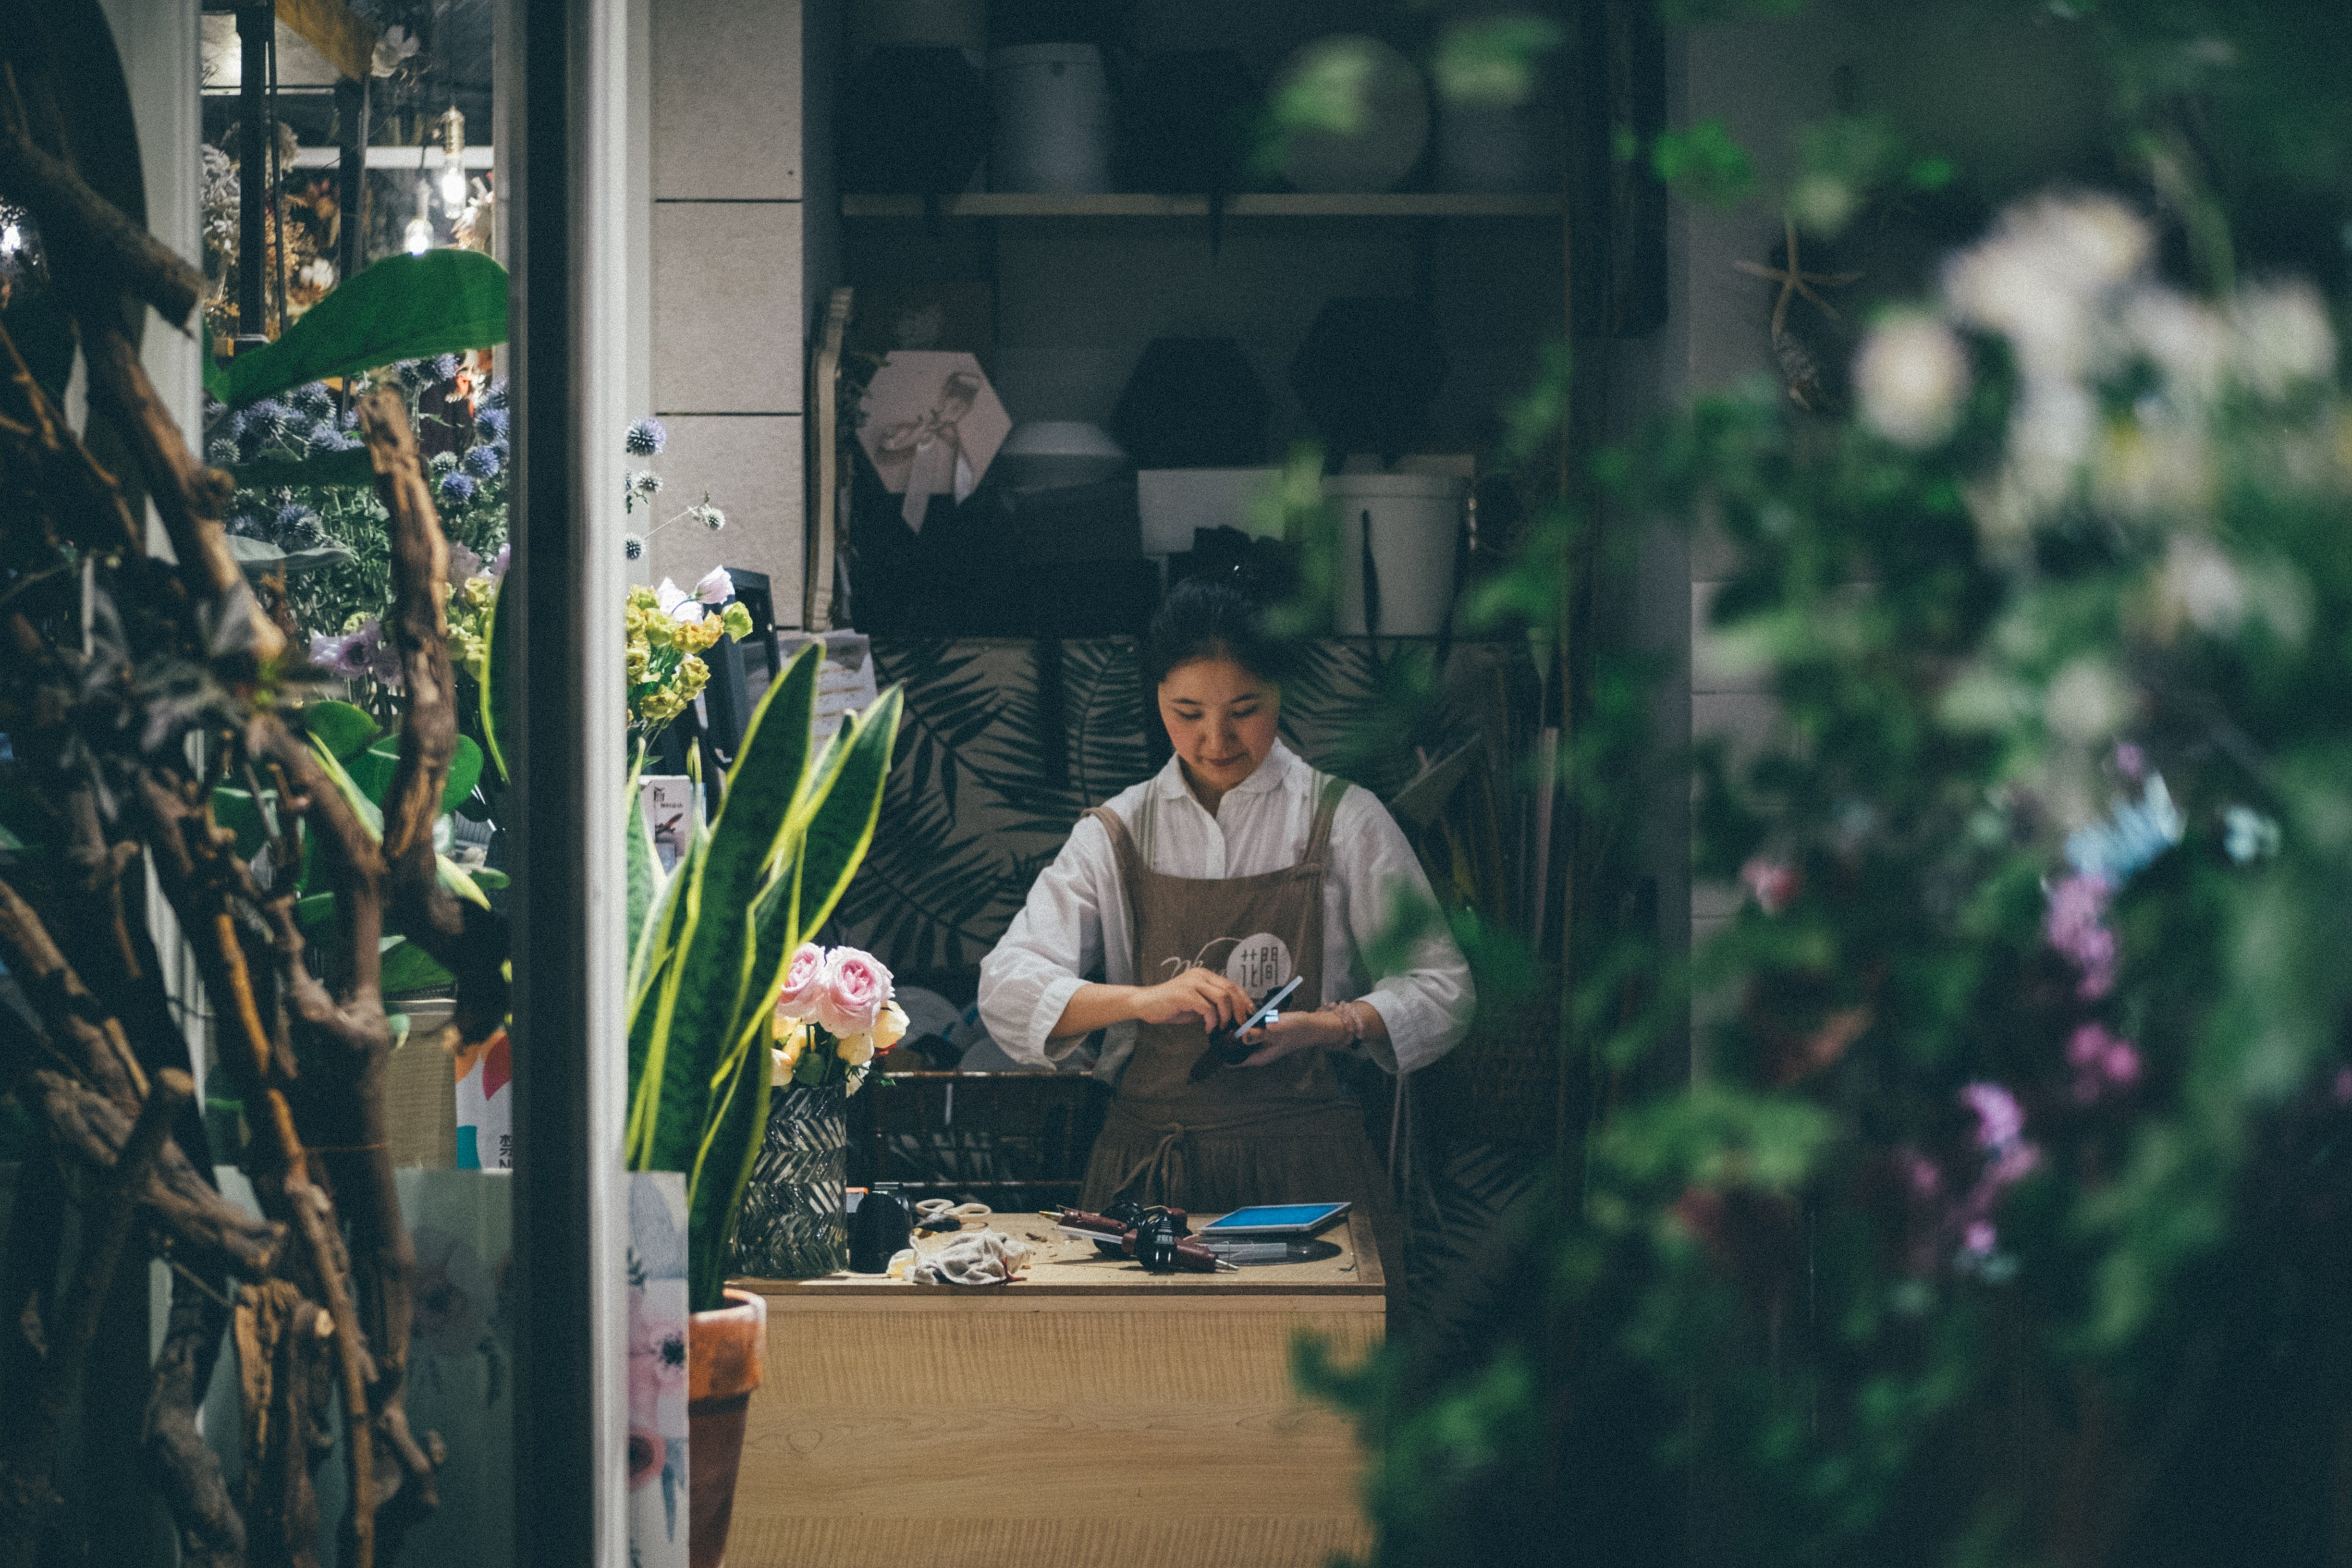 A florist working in her shop | Source: Unsplash.com